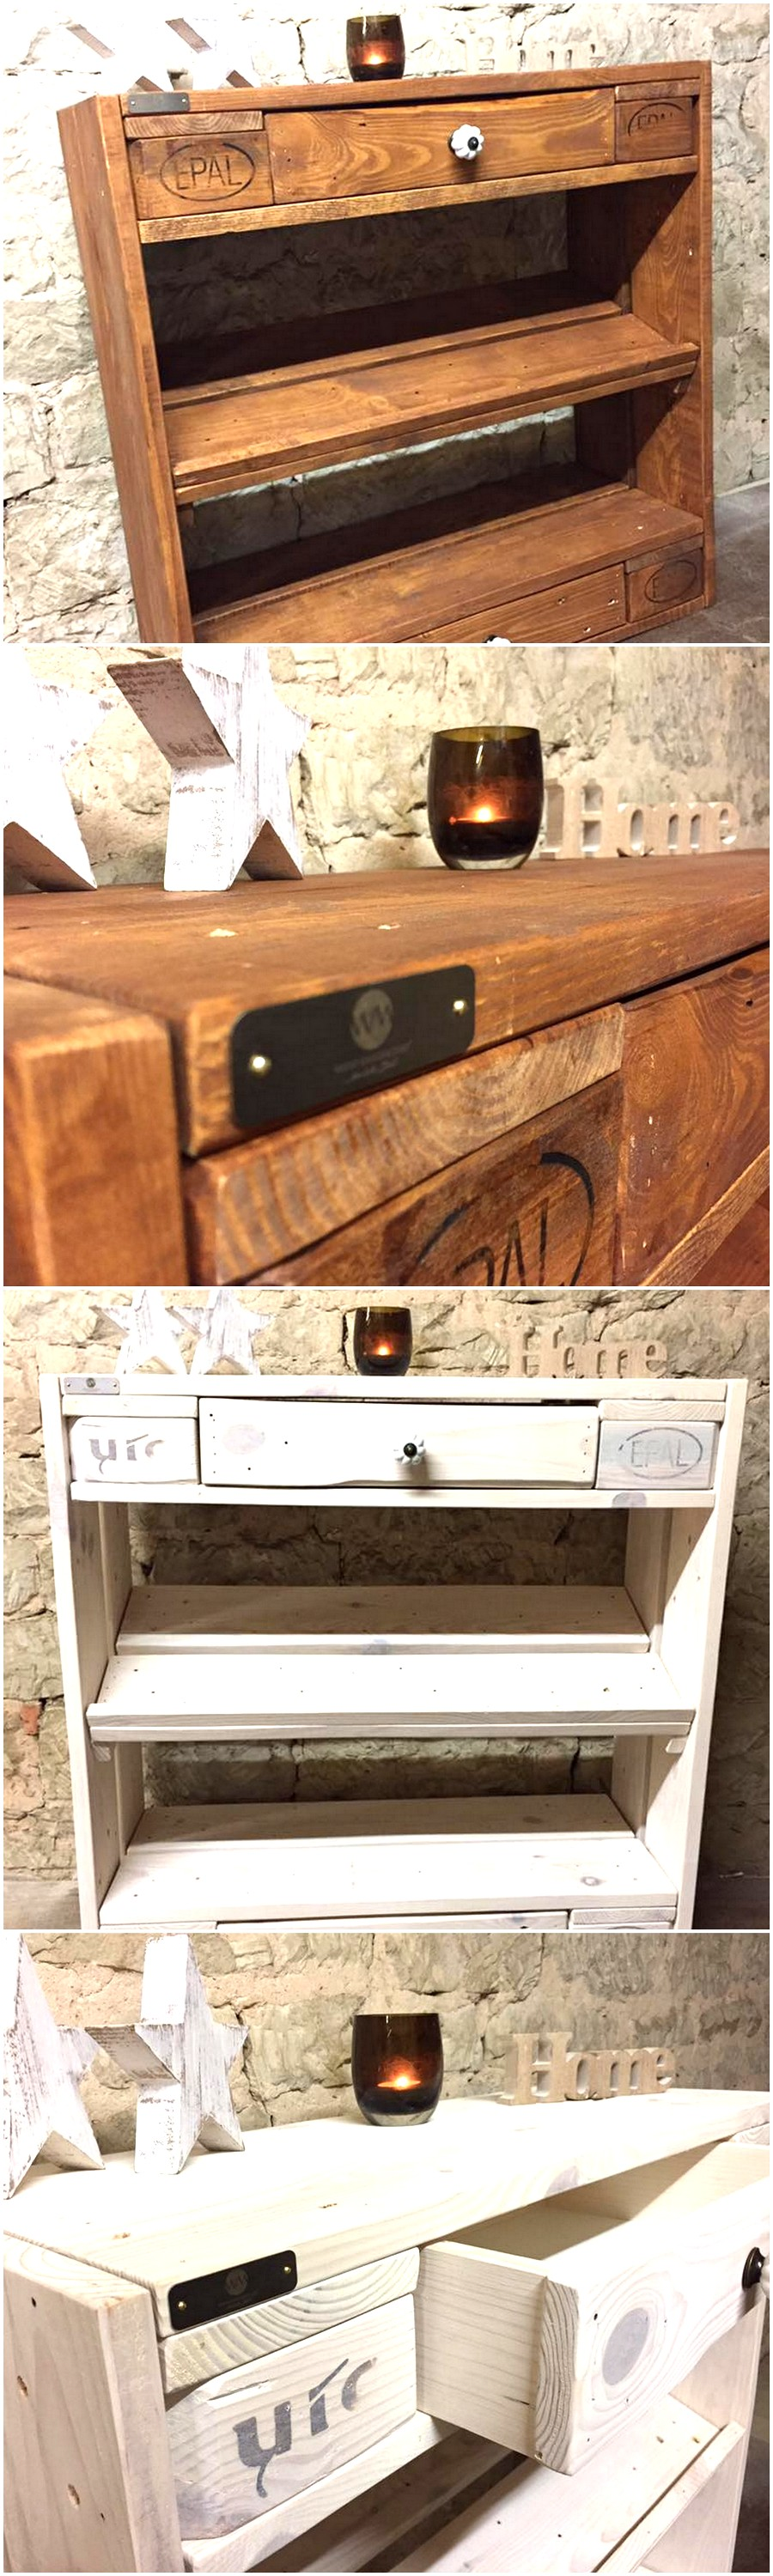 wood-pallet-side-table-with-drawers